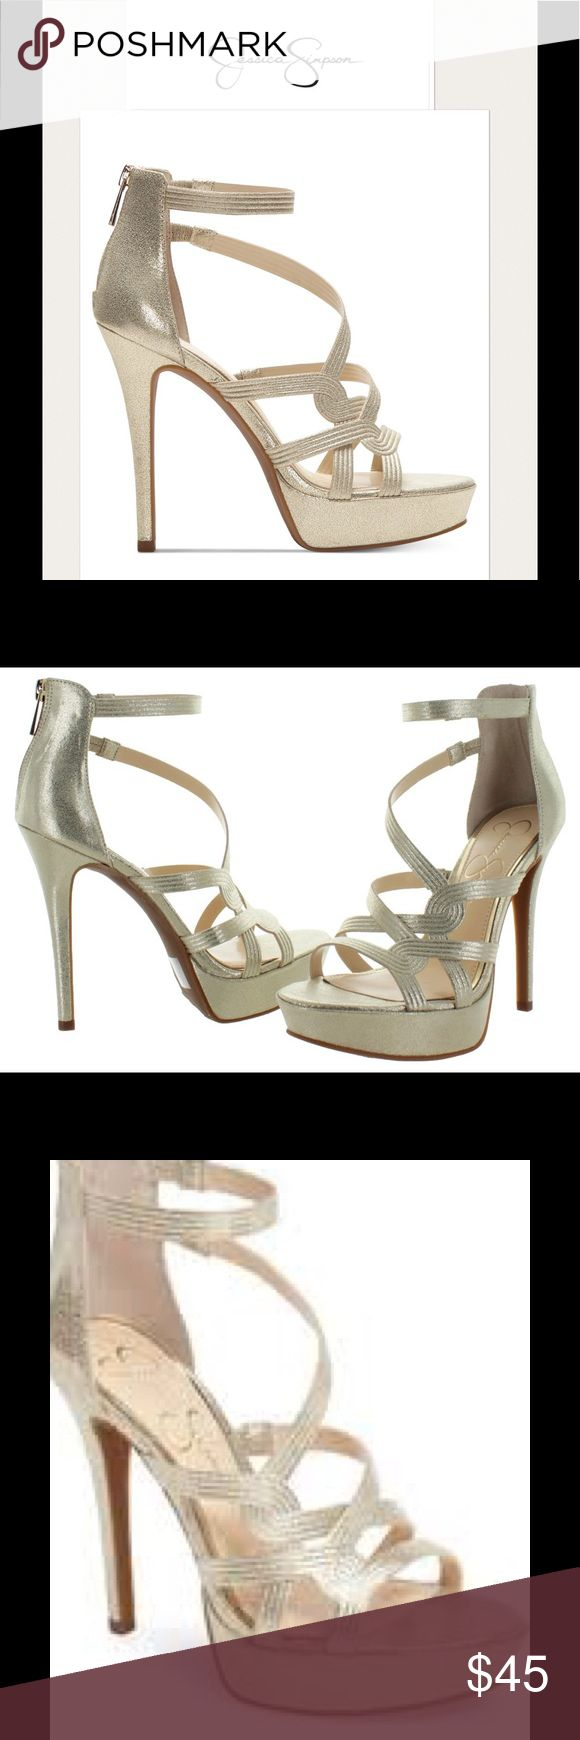 "NEW Jessica Simpson ""Bellanne"" sandal NEW Jessica Simpson ""Bellanne"" caged sandals.  Red-hot style for a smashing evening out. Jessica Simpson's Bellanne dress sandals are ultra-strappy with a skyscraper platform stiletto heel in a pale gold color.  Firm on price and no trades. Jessica Simpson Shoes Heels"